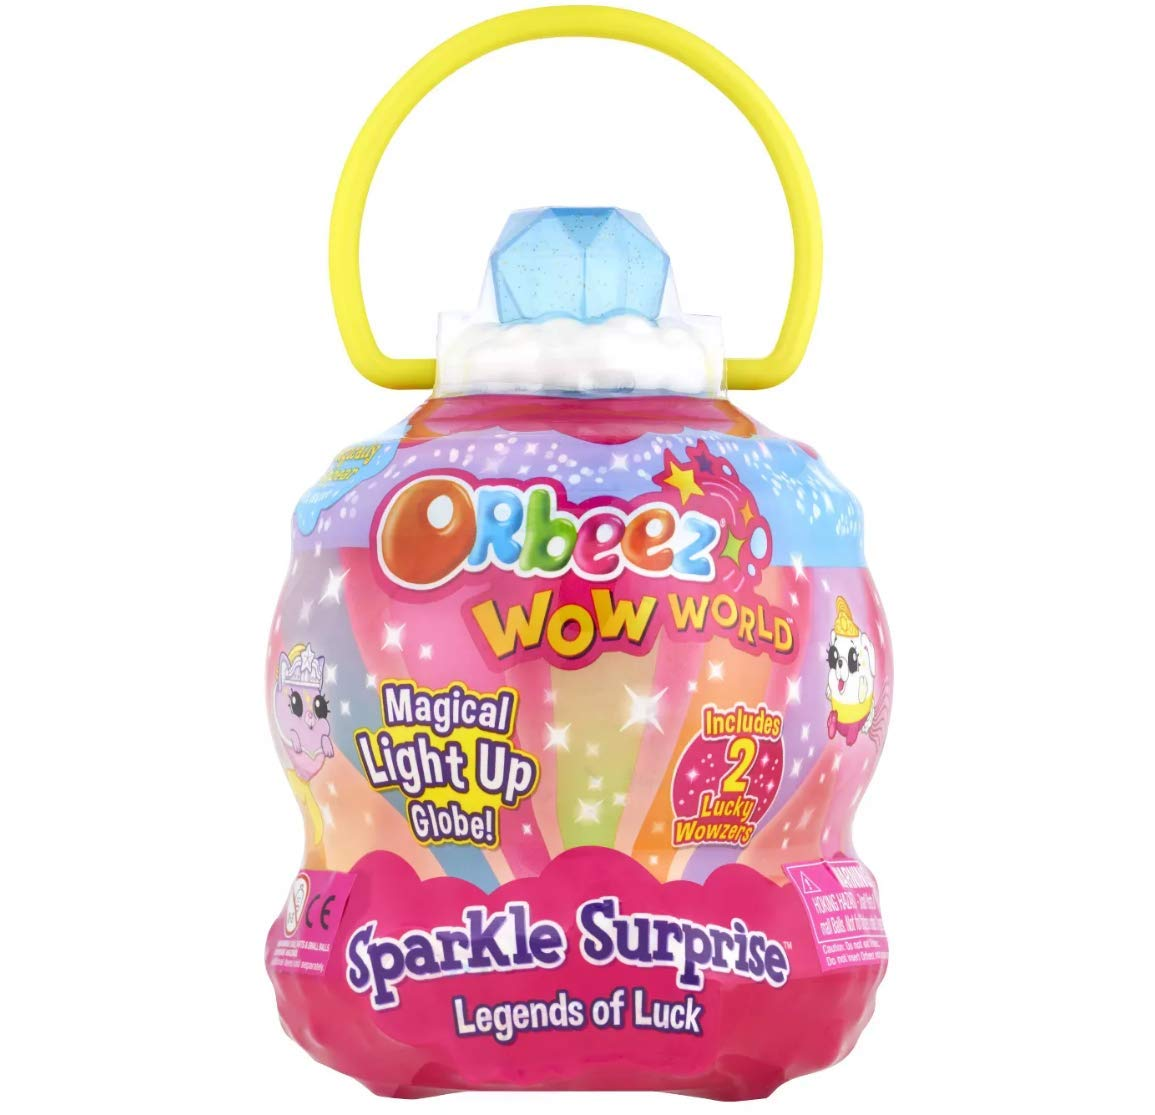 Orbeez Wow World - Magical Light Up Globe! - Sparkle Surprise Legends of Luck! by Orbeez